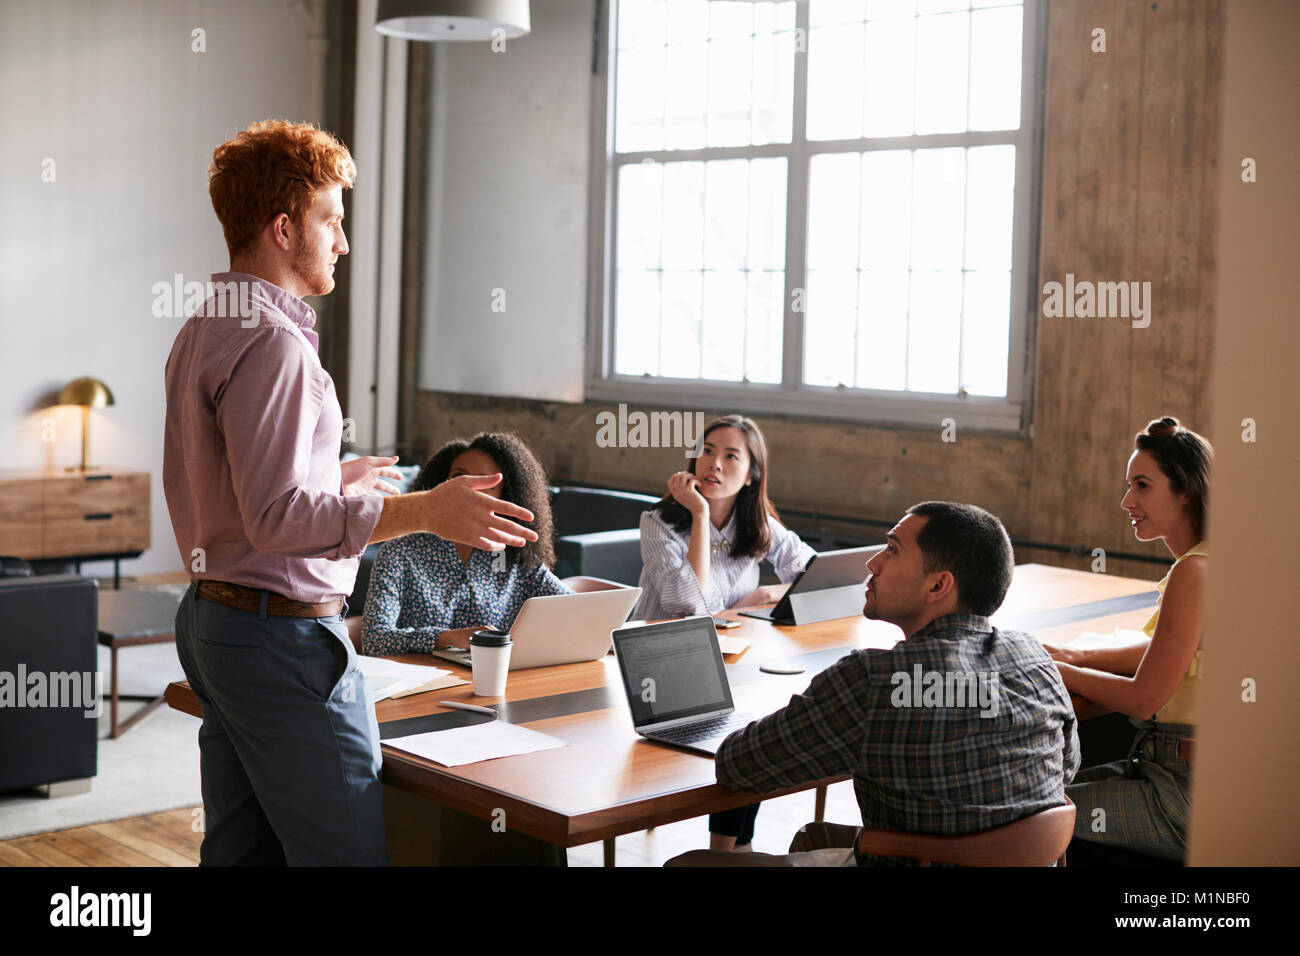 Young man standing to address colleagues at a work meeting - Stock Image